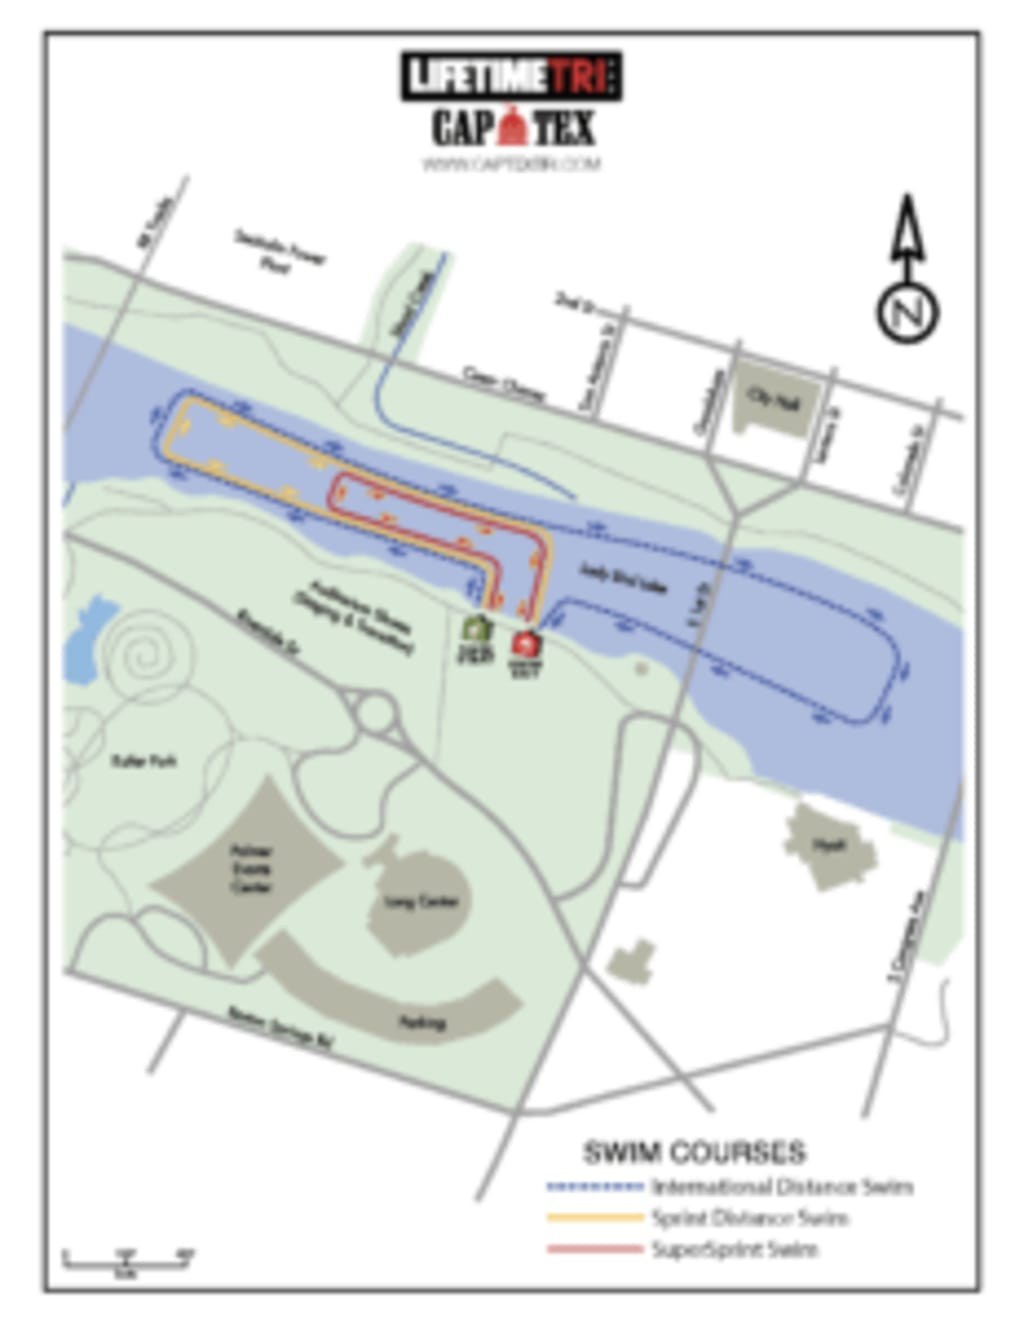 LTF-cap-tex-swim-course-map-232x300.png